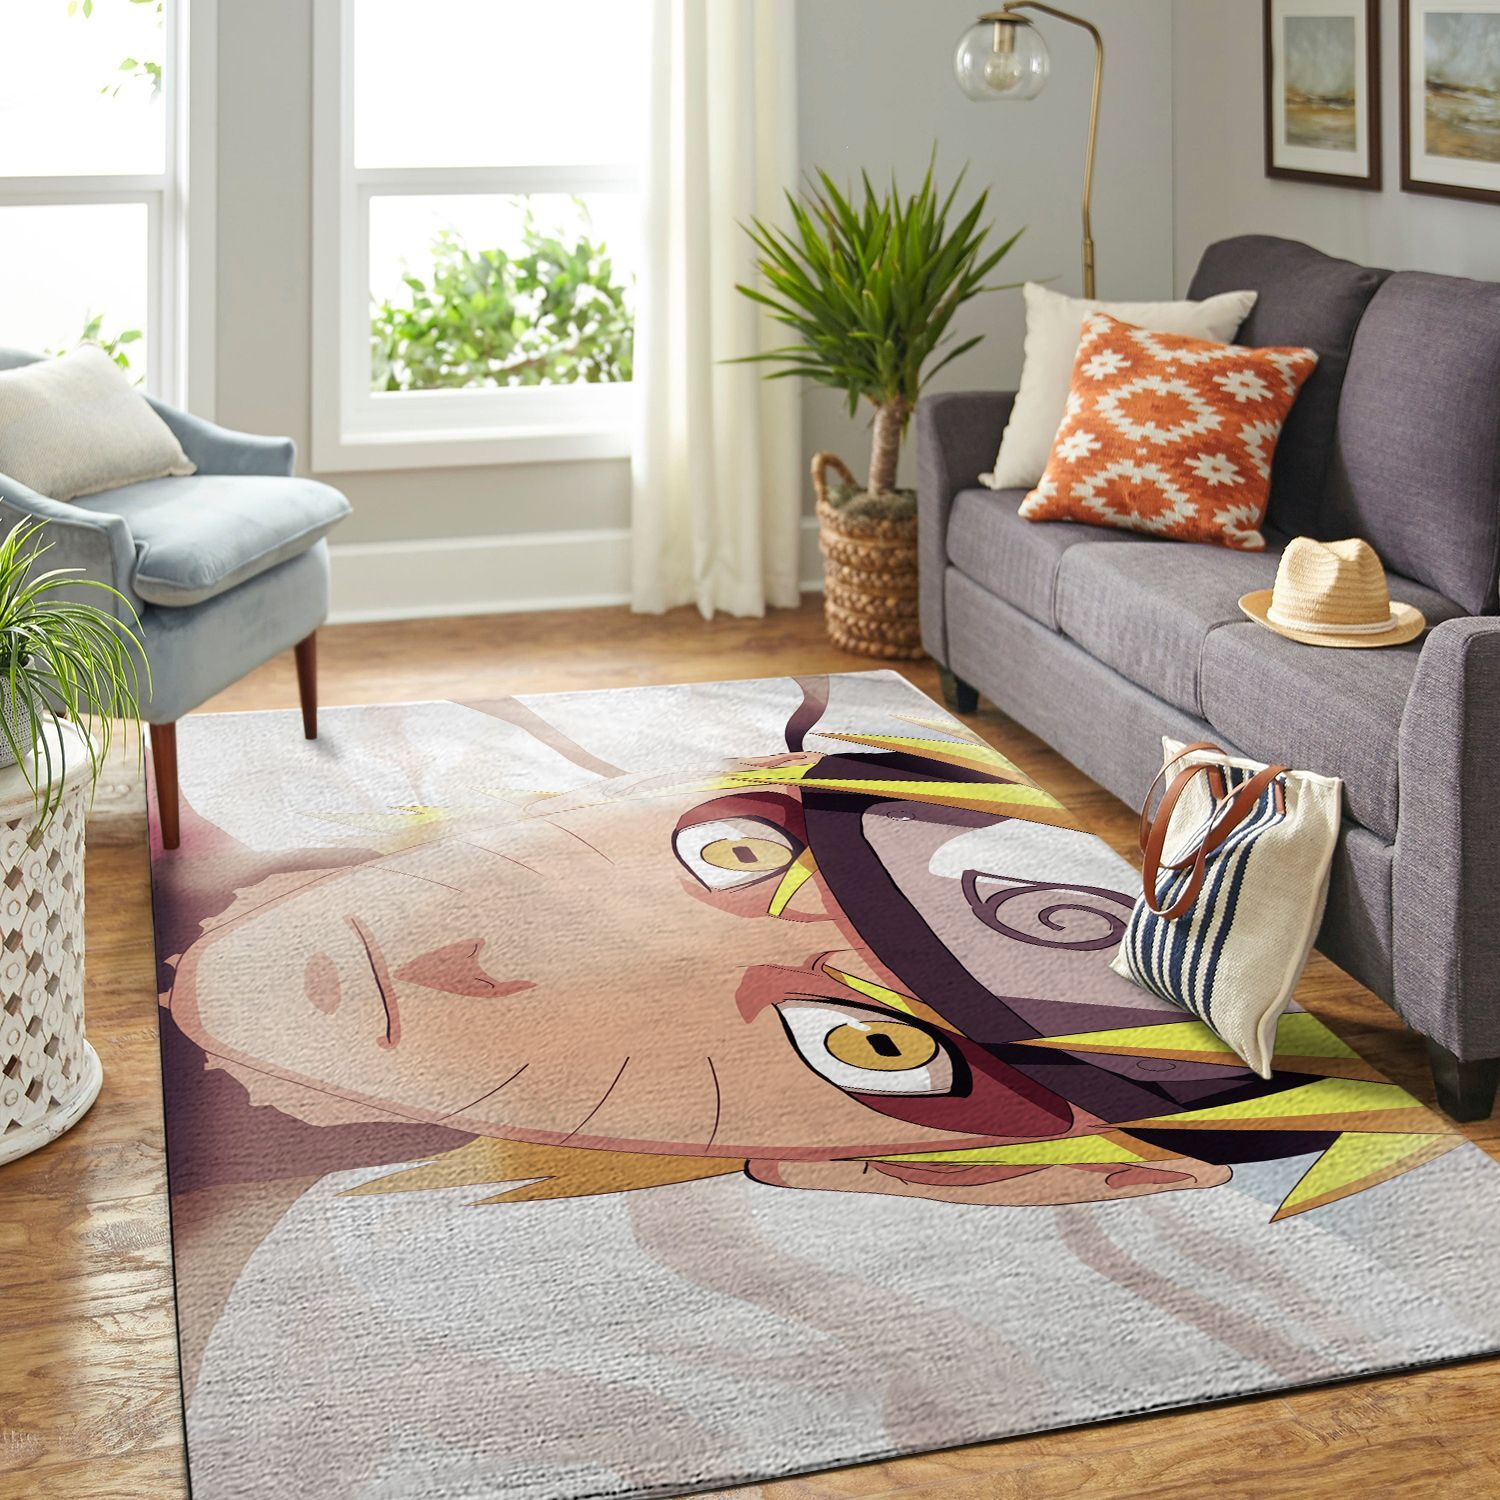 Amazon Naruto Themed Living Room Area No6391 Rug